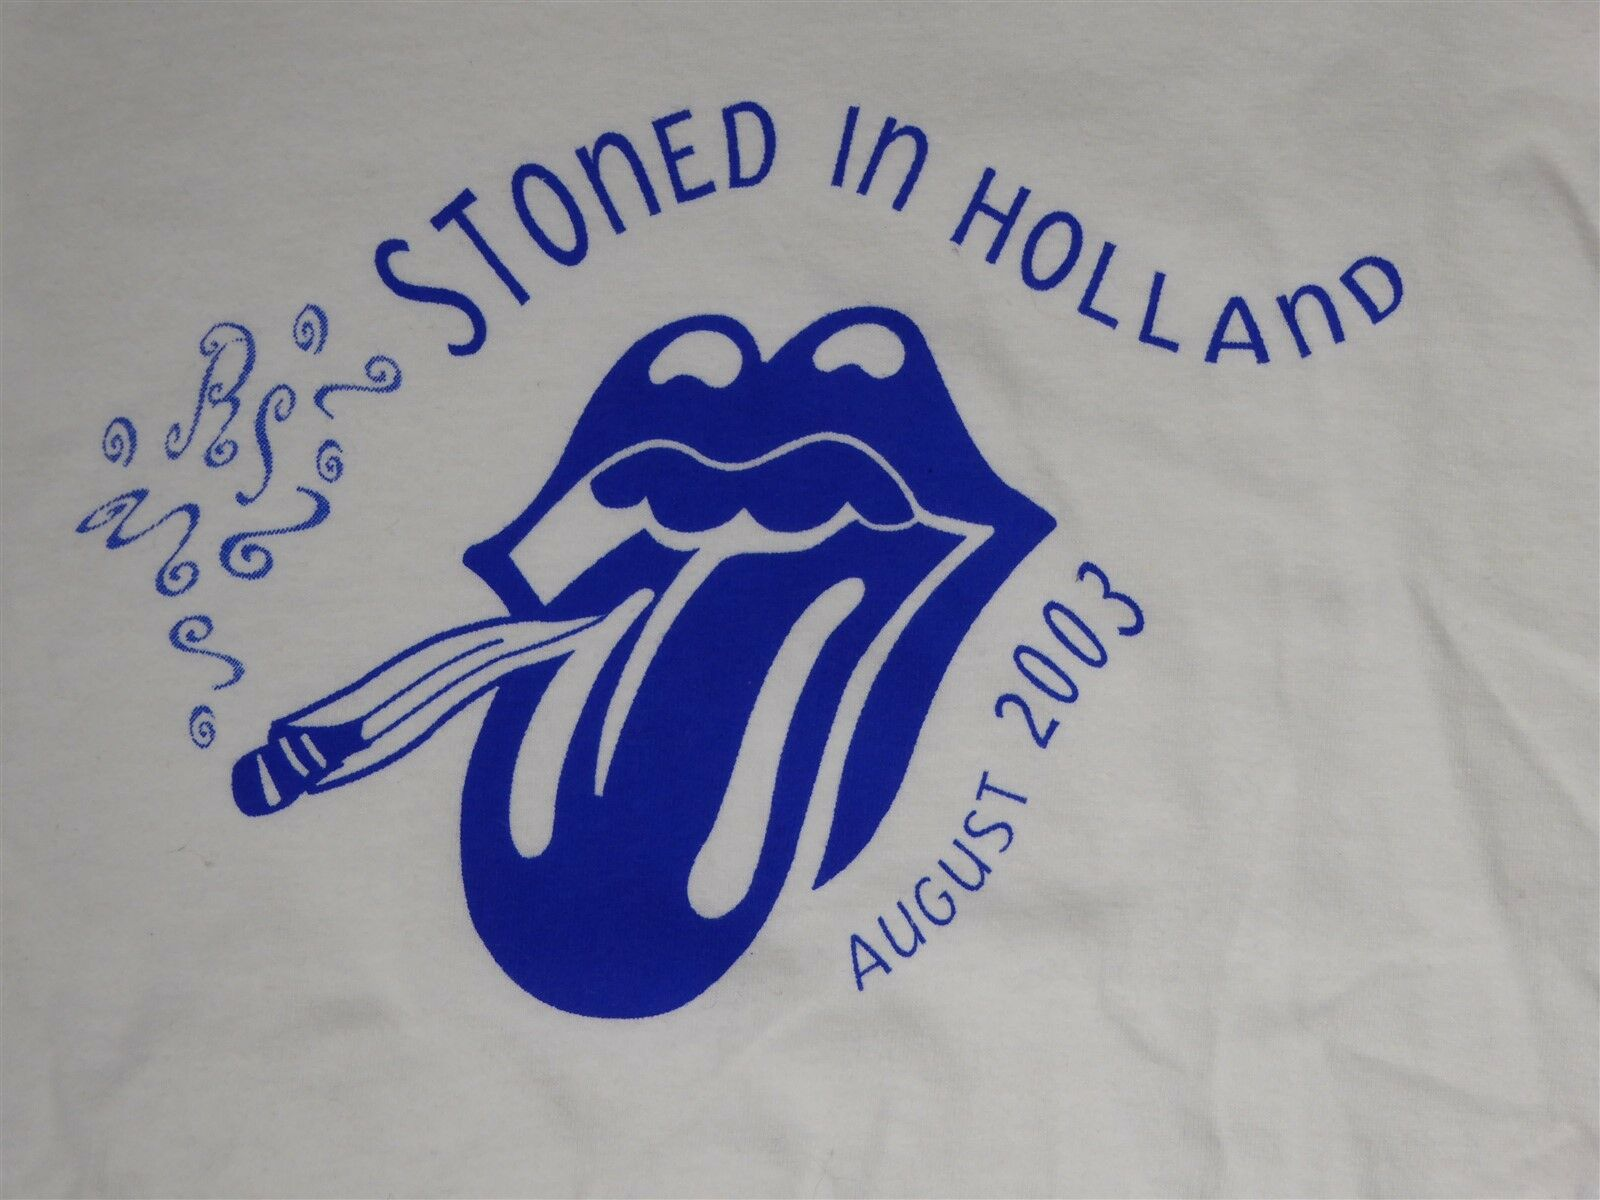 Rolling Stones Stoned in Holland August 2003 2XL Weiß T-Shirt RARE